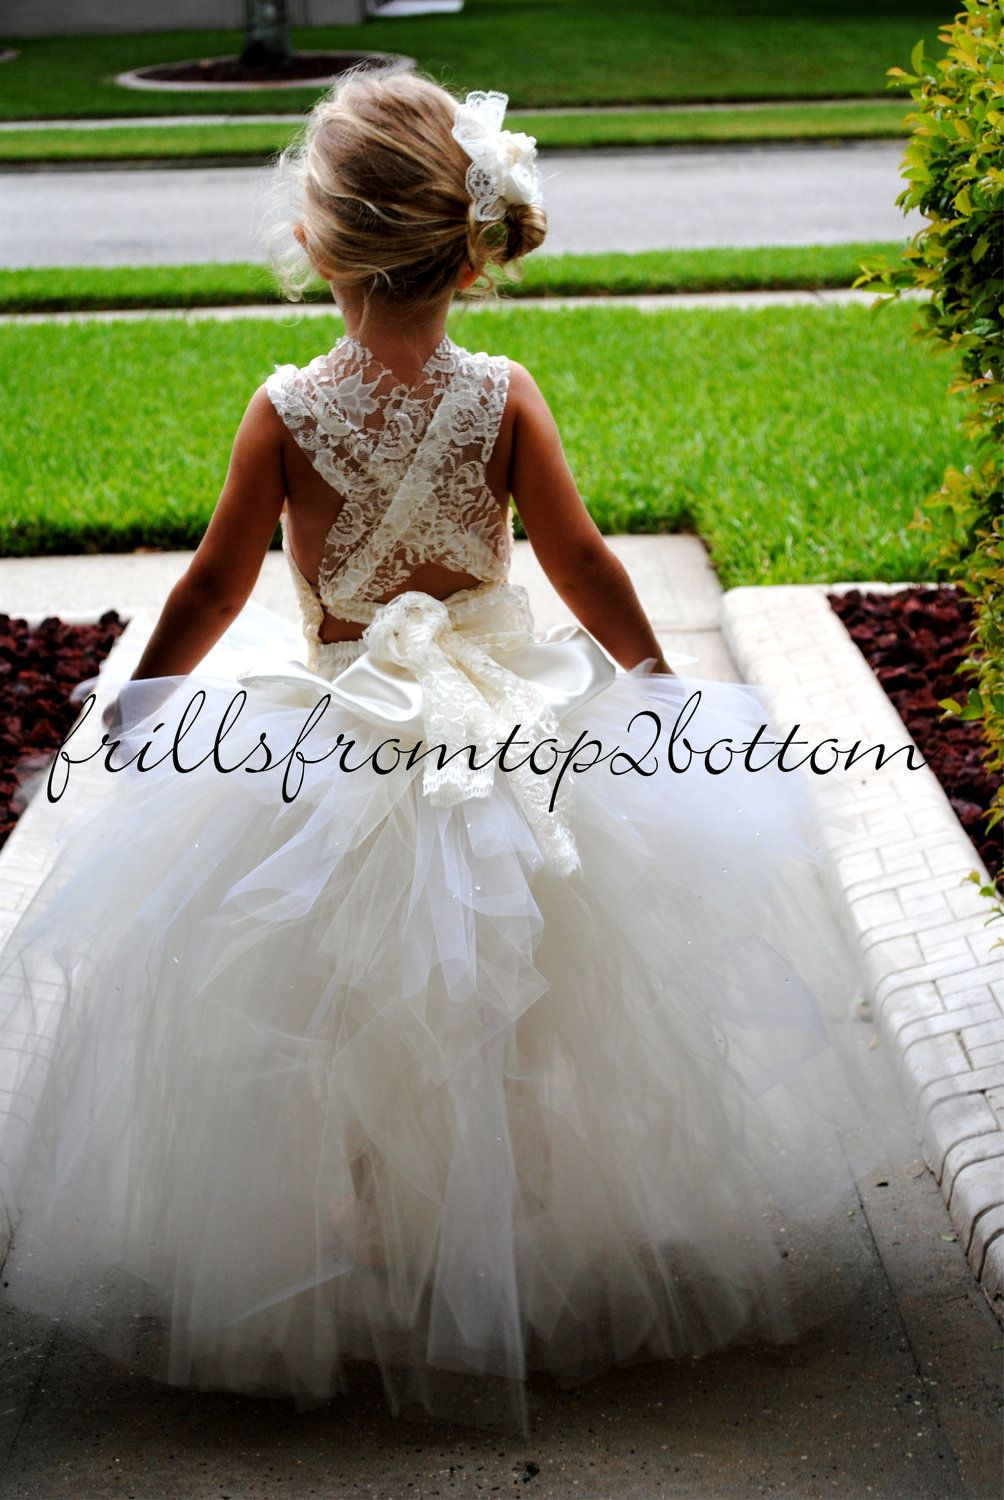 Ivory Flower Girl Dress . Tutu Skirt . Halter Top w/ Lace straps ...